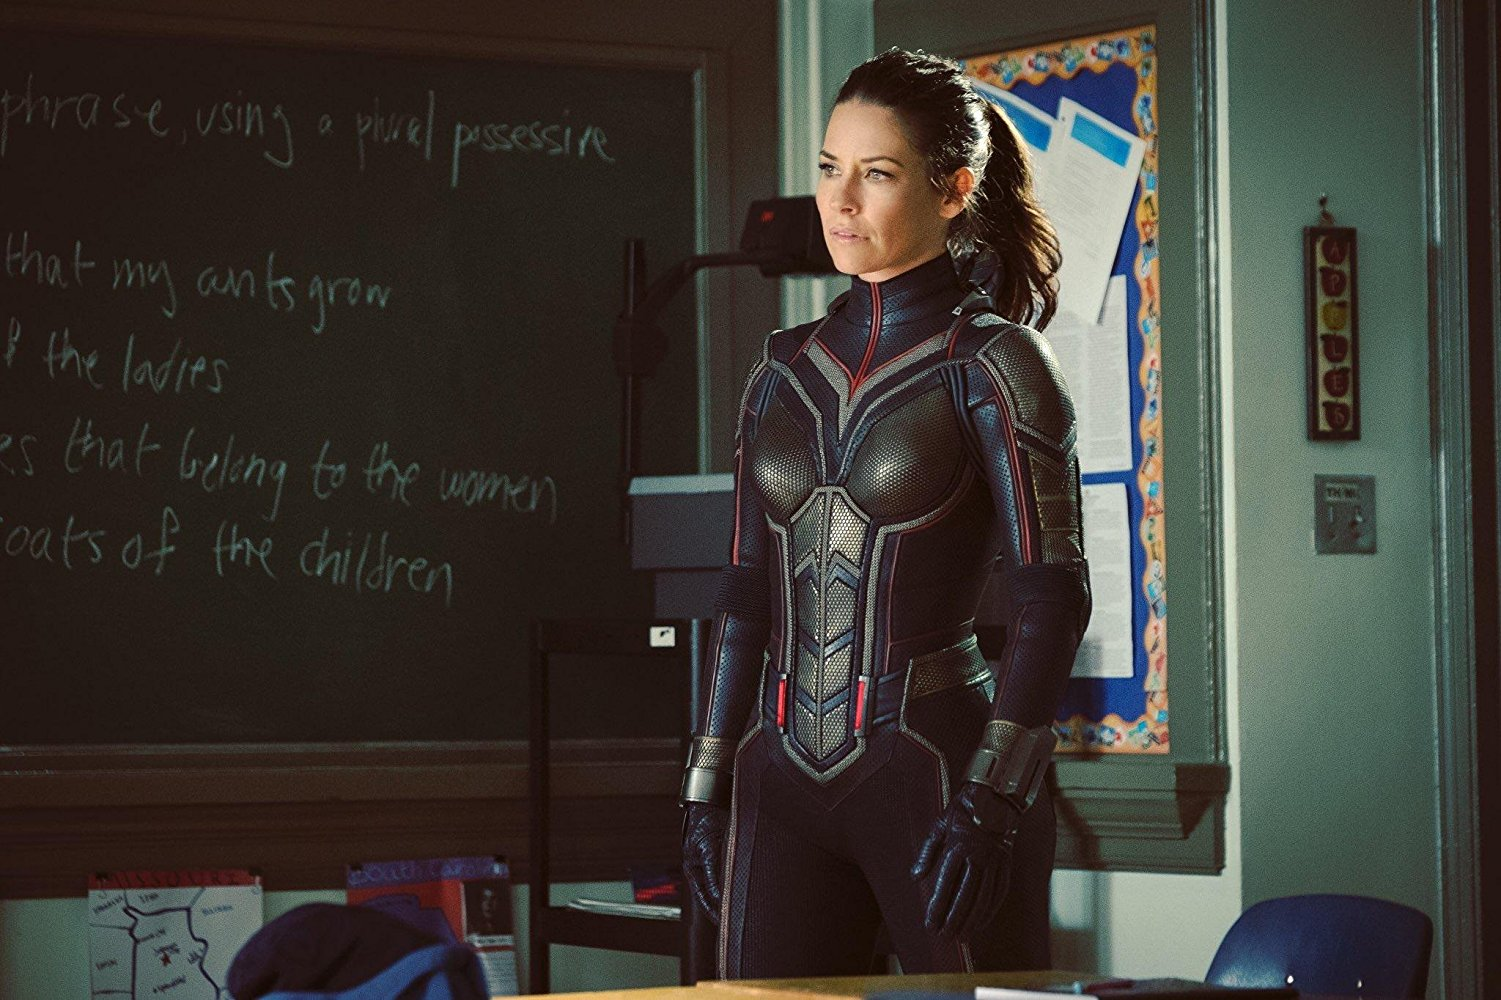 ant-man-and-the-wasp_1516043467719_333336_ver1_20180116051208-159532